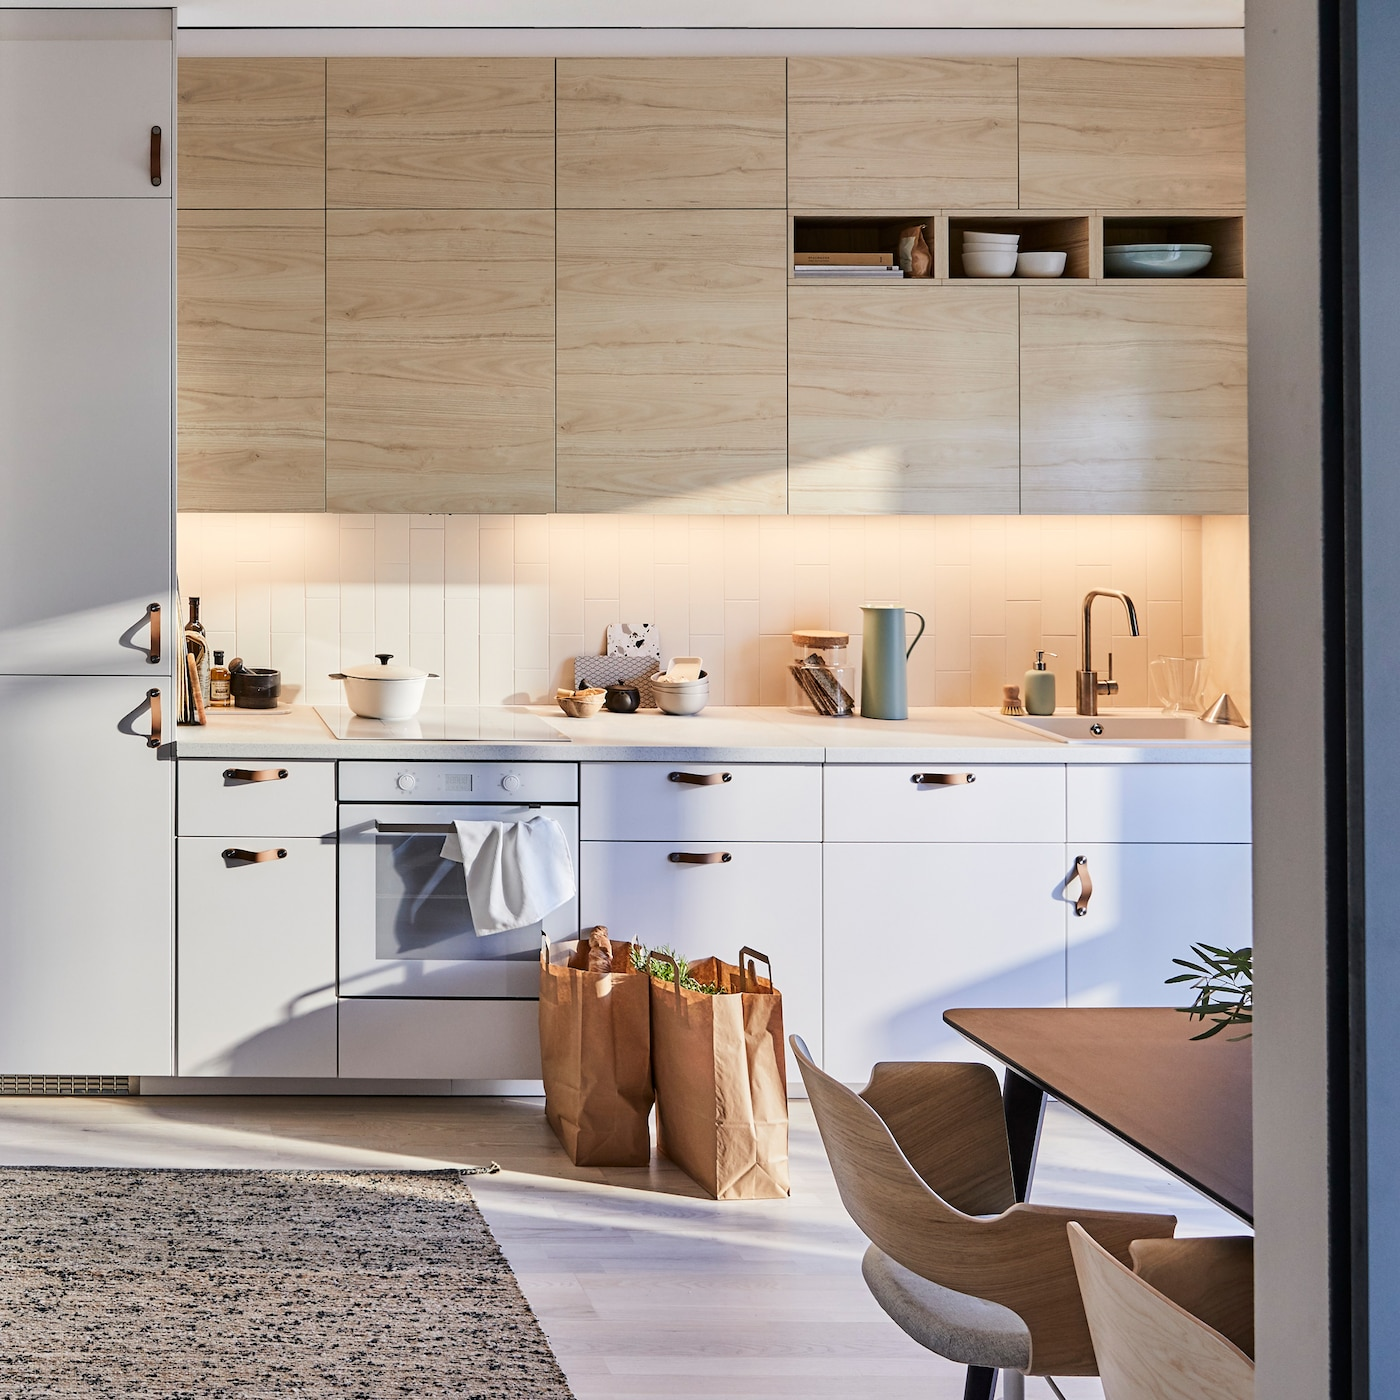 IKEA SEKTION kitchen with light wood ASKERSUND ash effect door fronts pair well with a MELHOLT flatwoven rug woven from jute and wool for a zen kitchen.